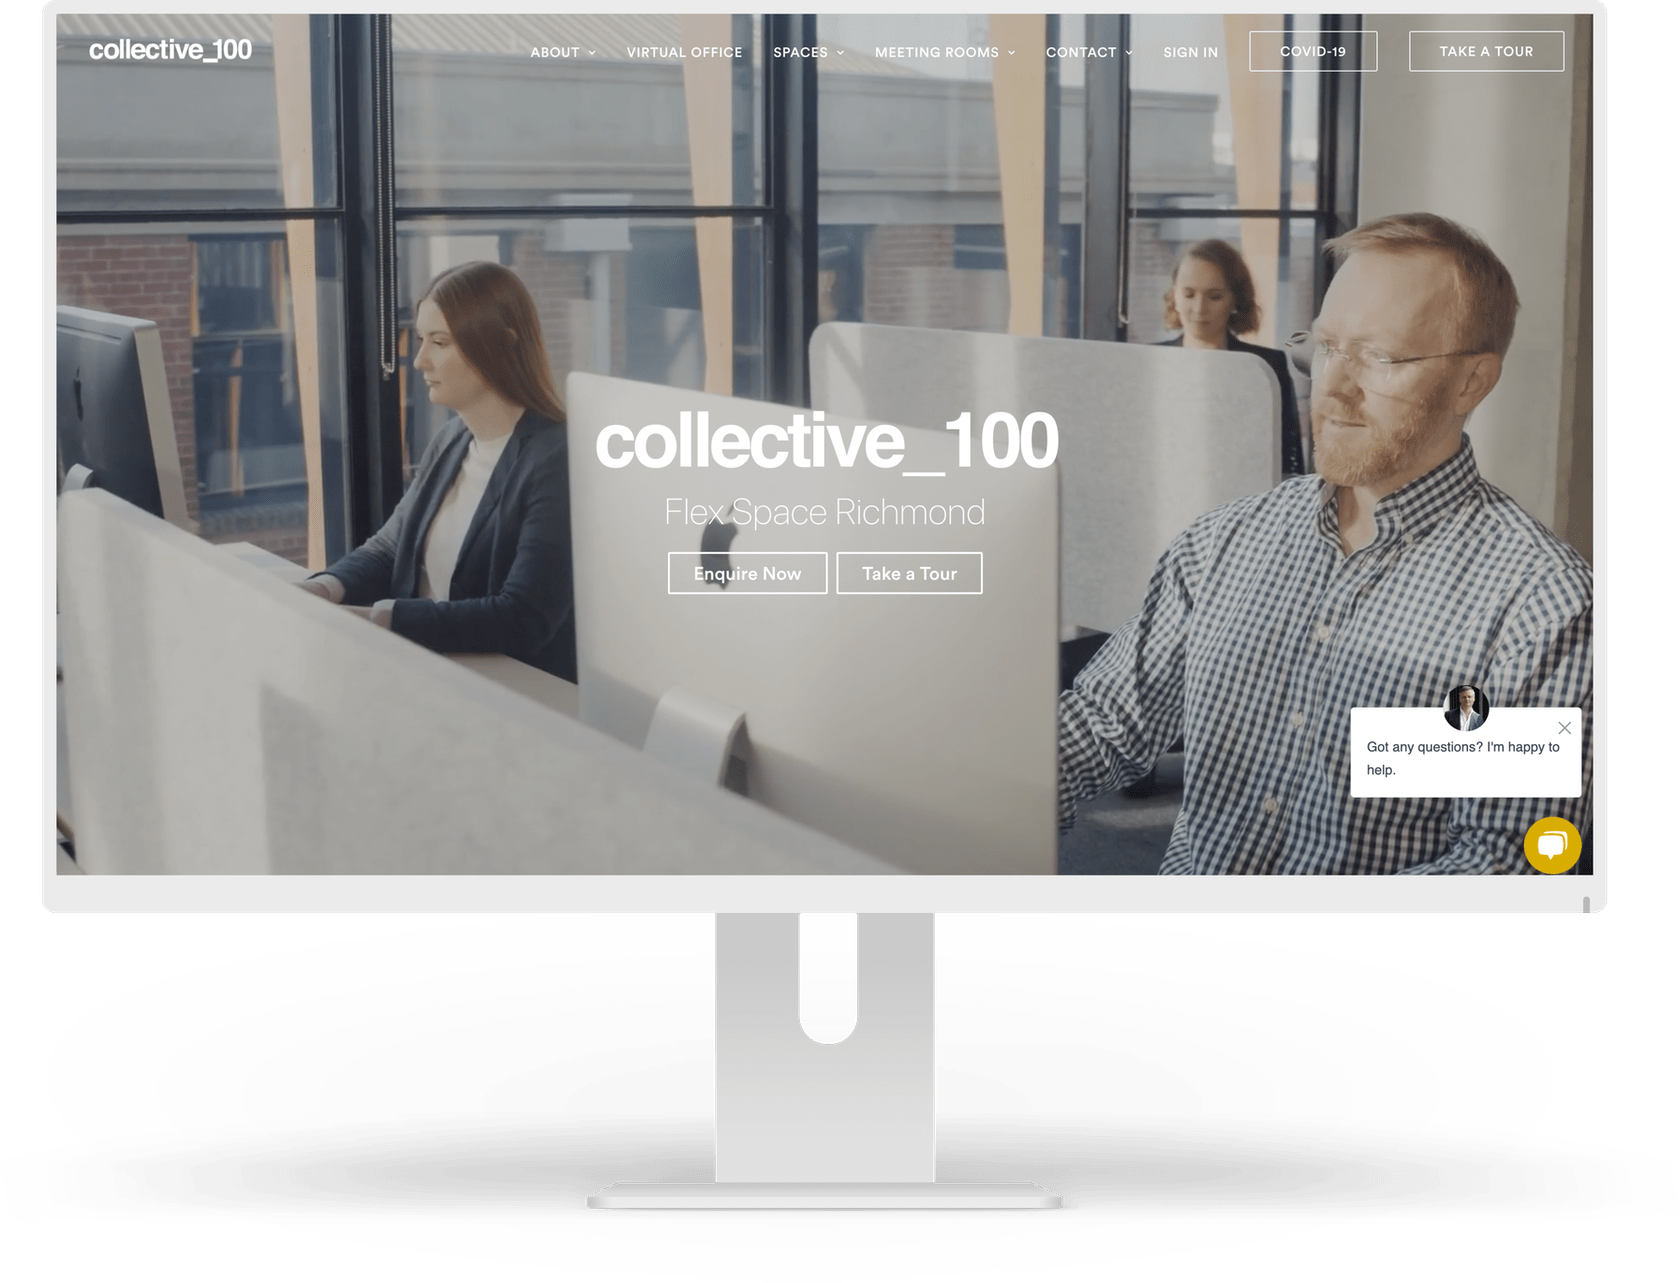 Web Development for collective_100